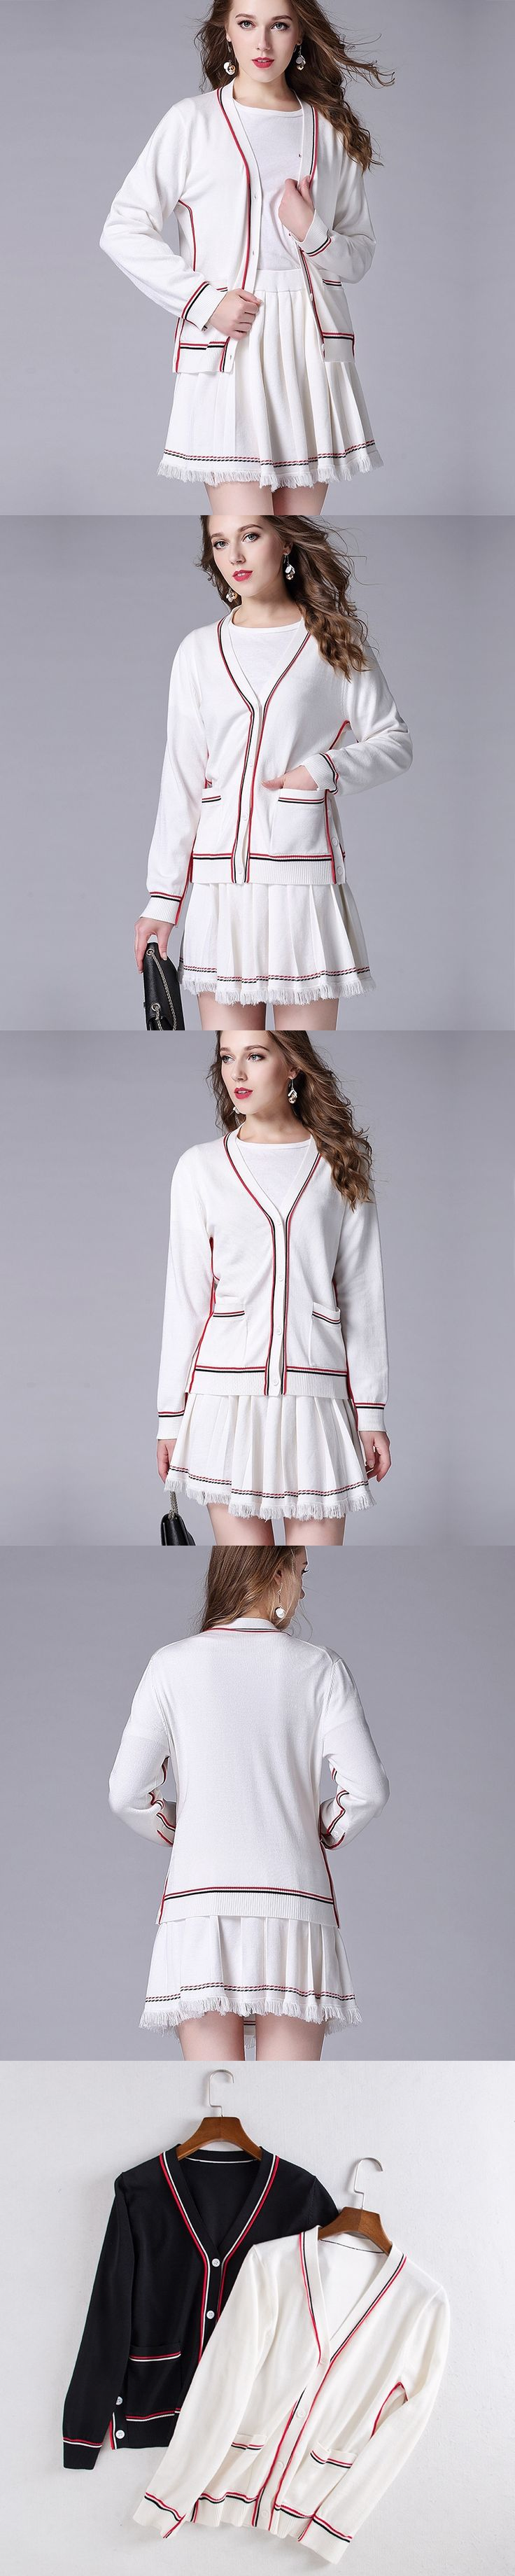 early autumn new knitting cardigan V collar female slim striped wind hit color sweater+tassel skirt suit women two pieces set